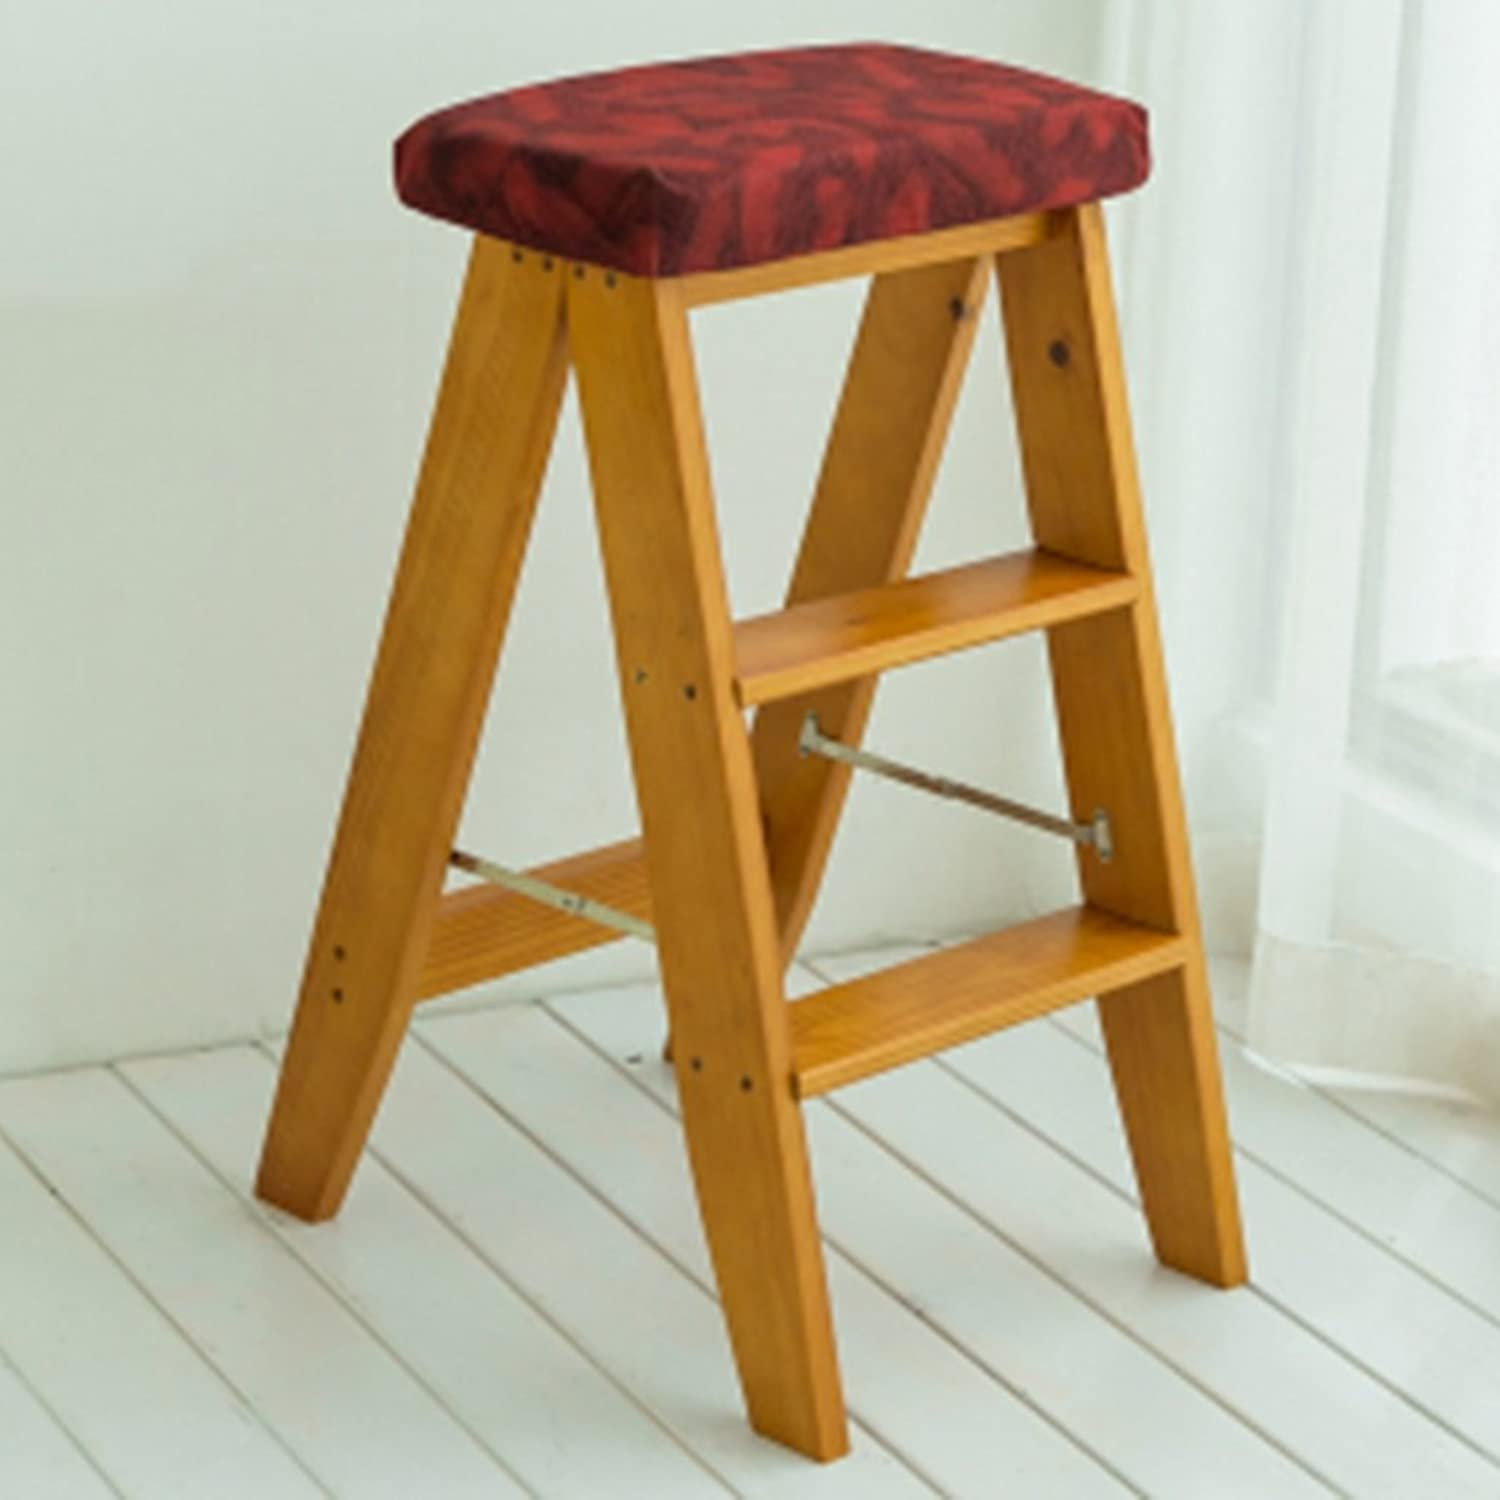 BLRYP Non-slip step stool Folding Ladder Stool Indoor Household Kitchen Stool Chairs Portable Solid Wood Small Stool Multi-functional Non-slip Treads Stepladder Stool color Optional, 343260cm Slip r